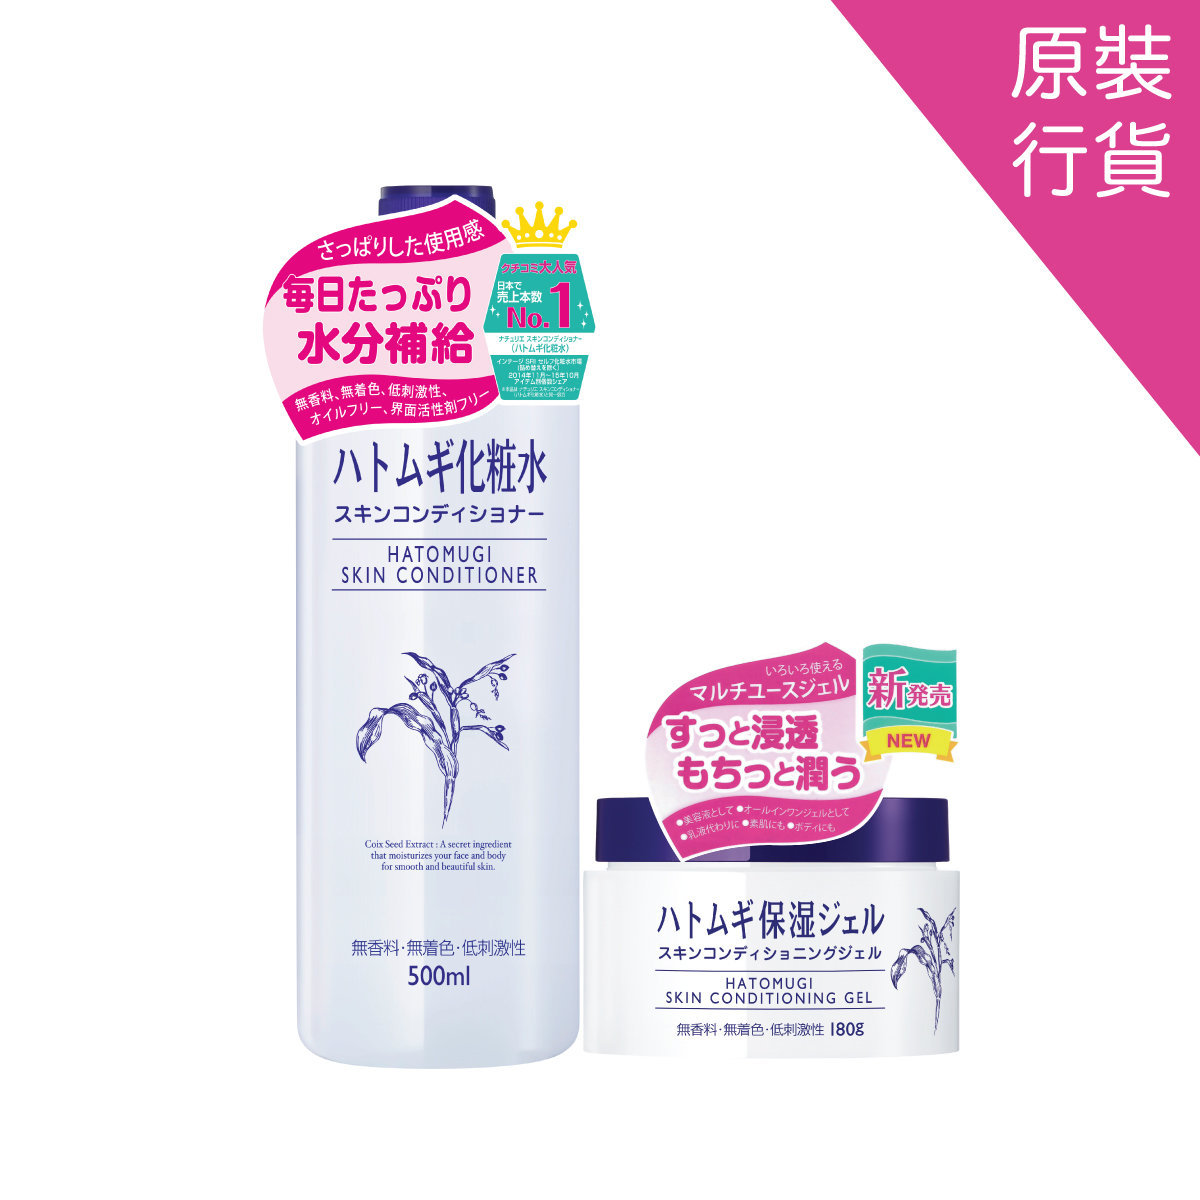 [Authorized Goods] Made in Japan- Limited Value Set Hatomugi Skin Conditioning Series (500ml +180g)